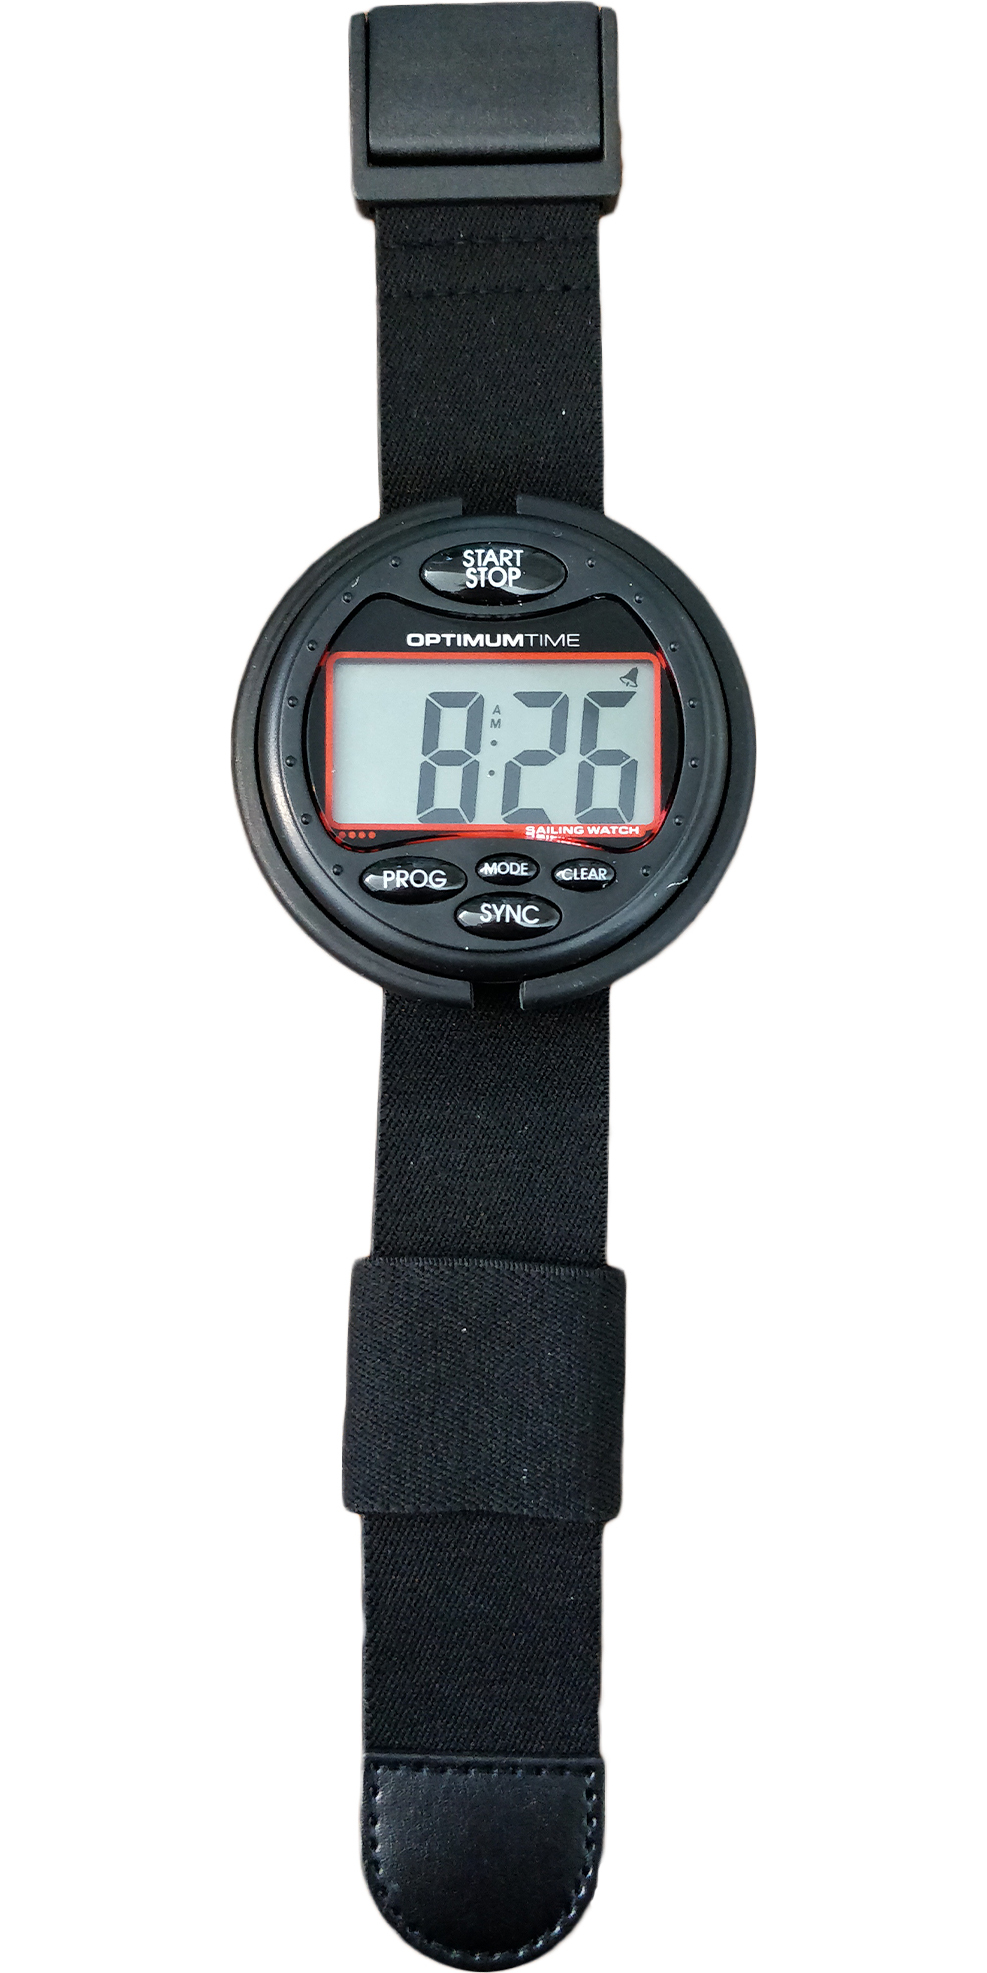 2019 Optimum Time Series 3 OS3 Sailing Watch Exclusivo Edición Negro 311